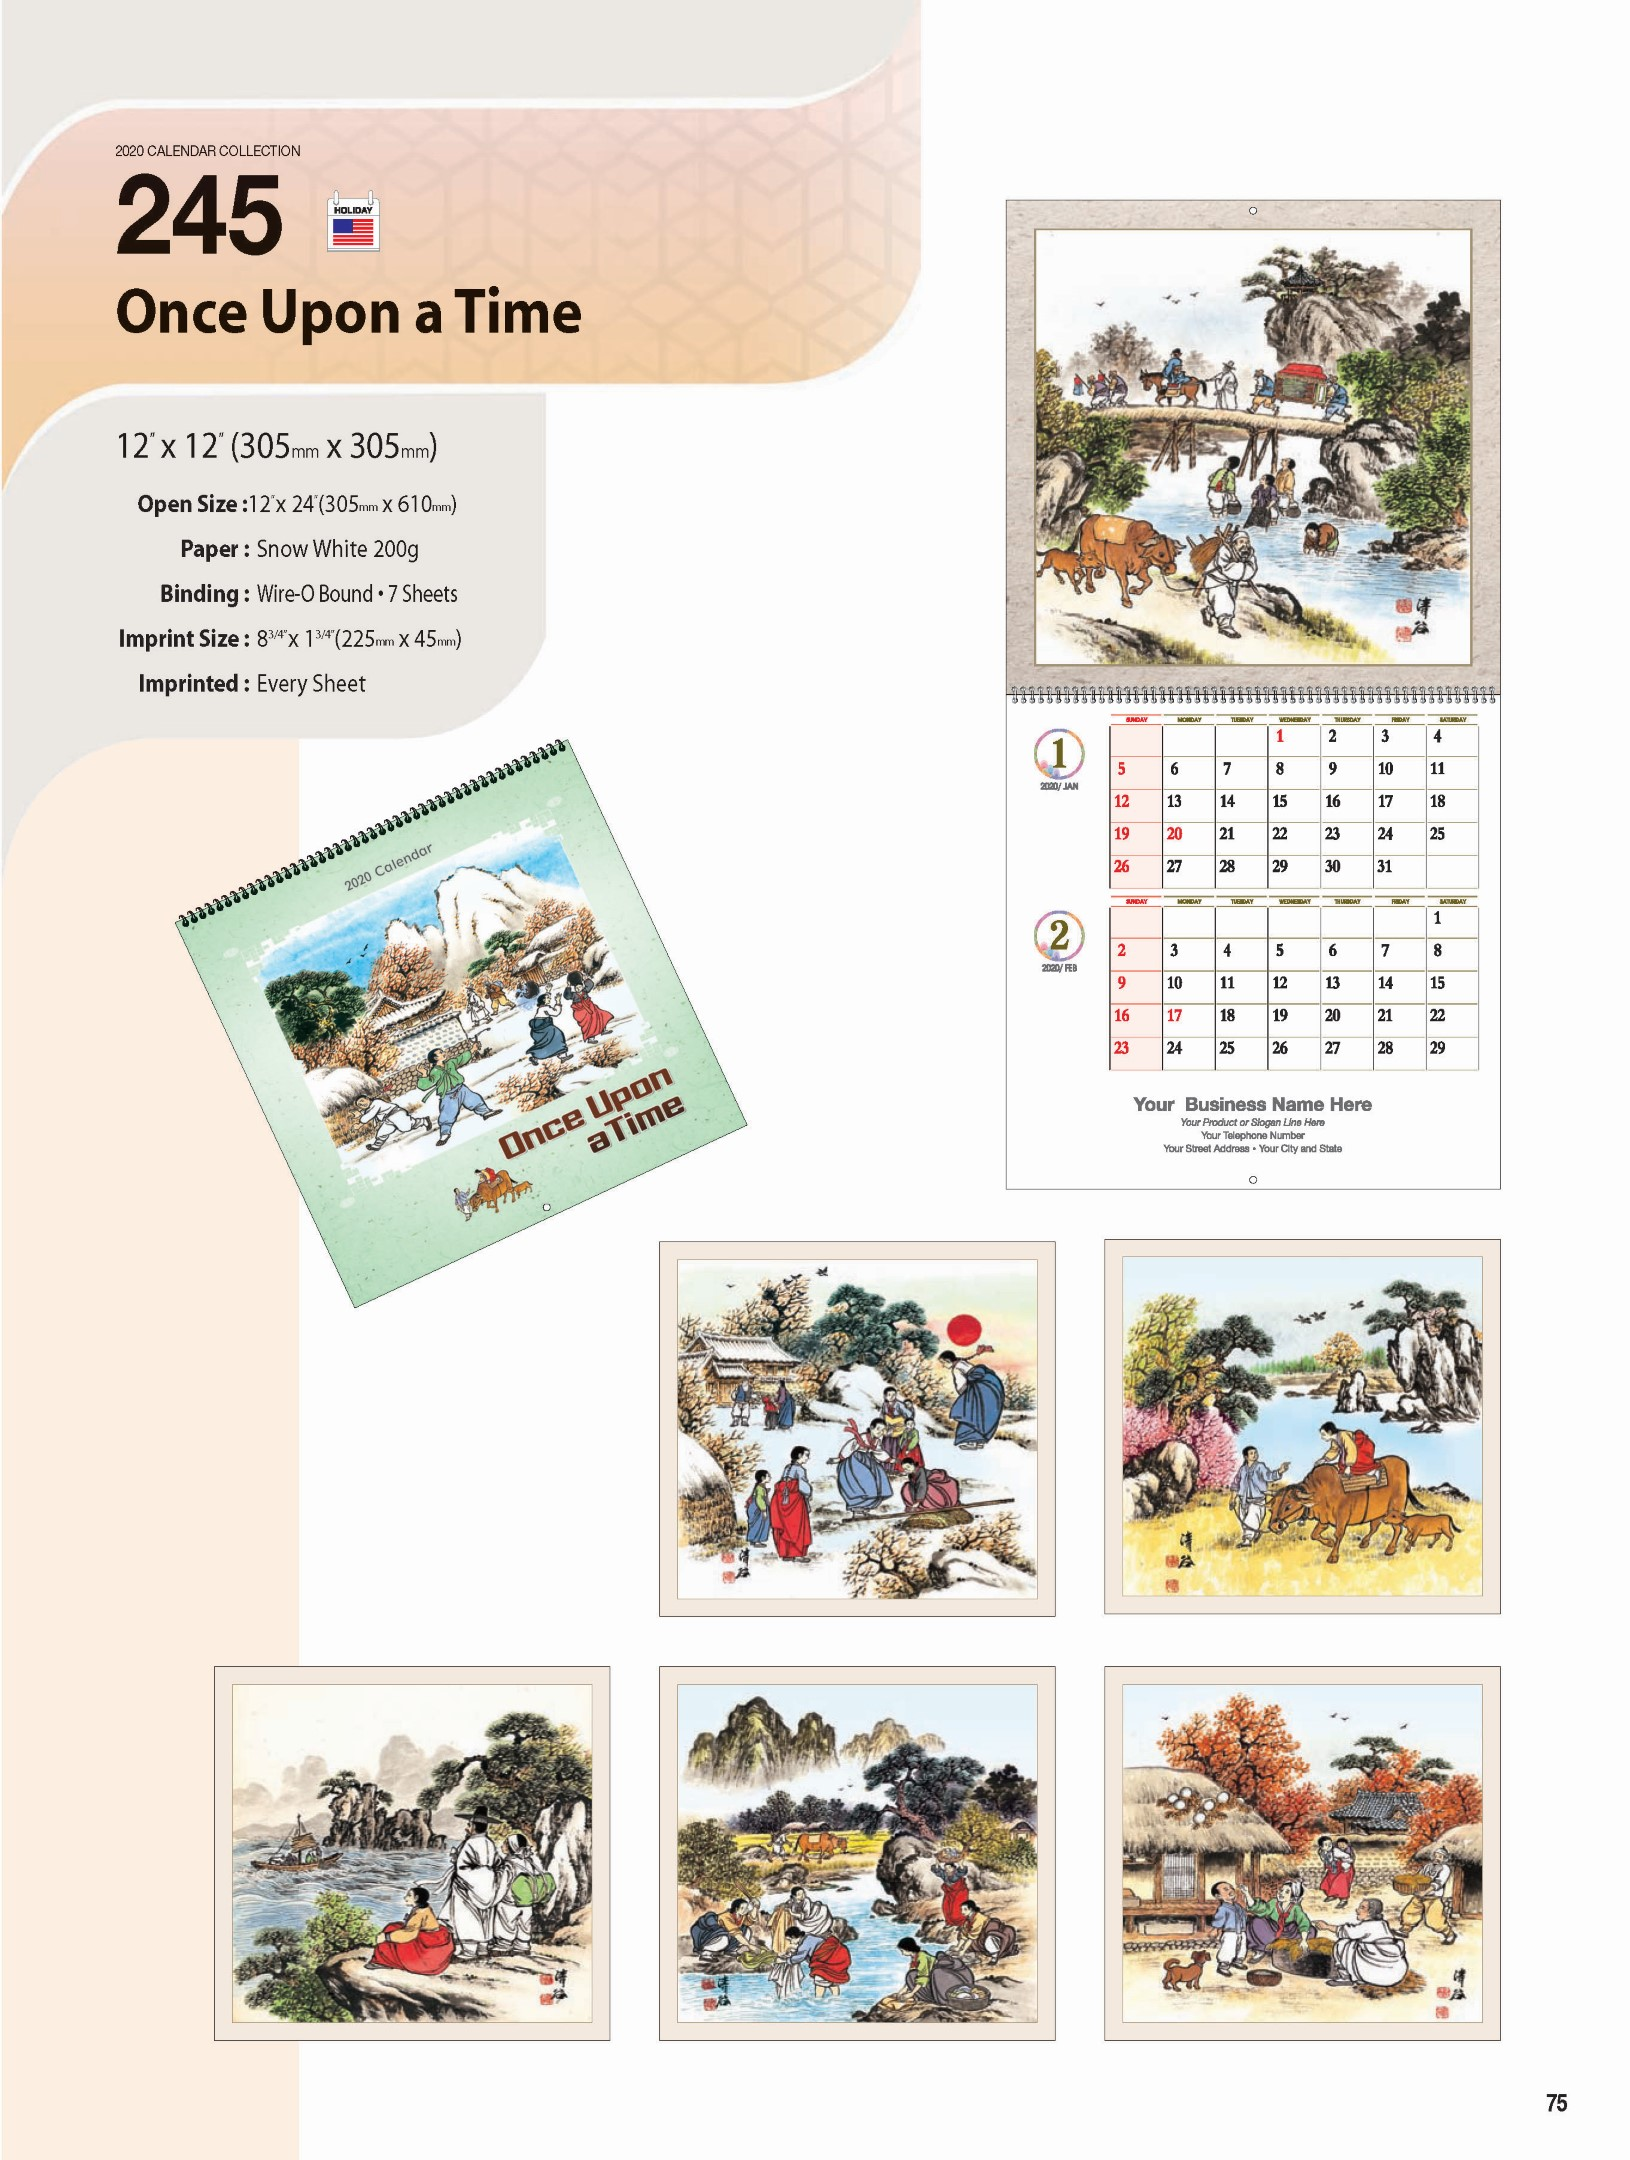 Once Upon A Time Calendar 2020 CP Printing & Century Calendars: Order Printing